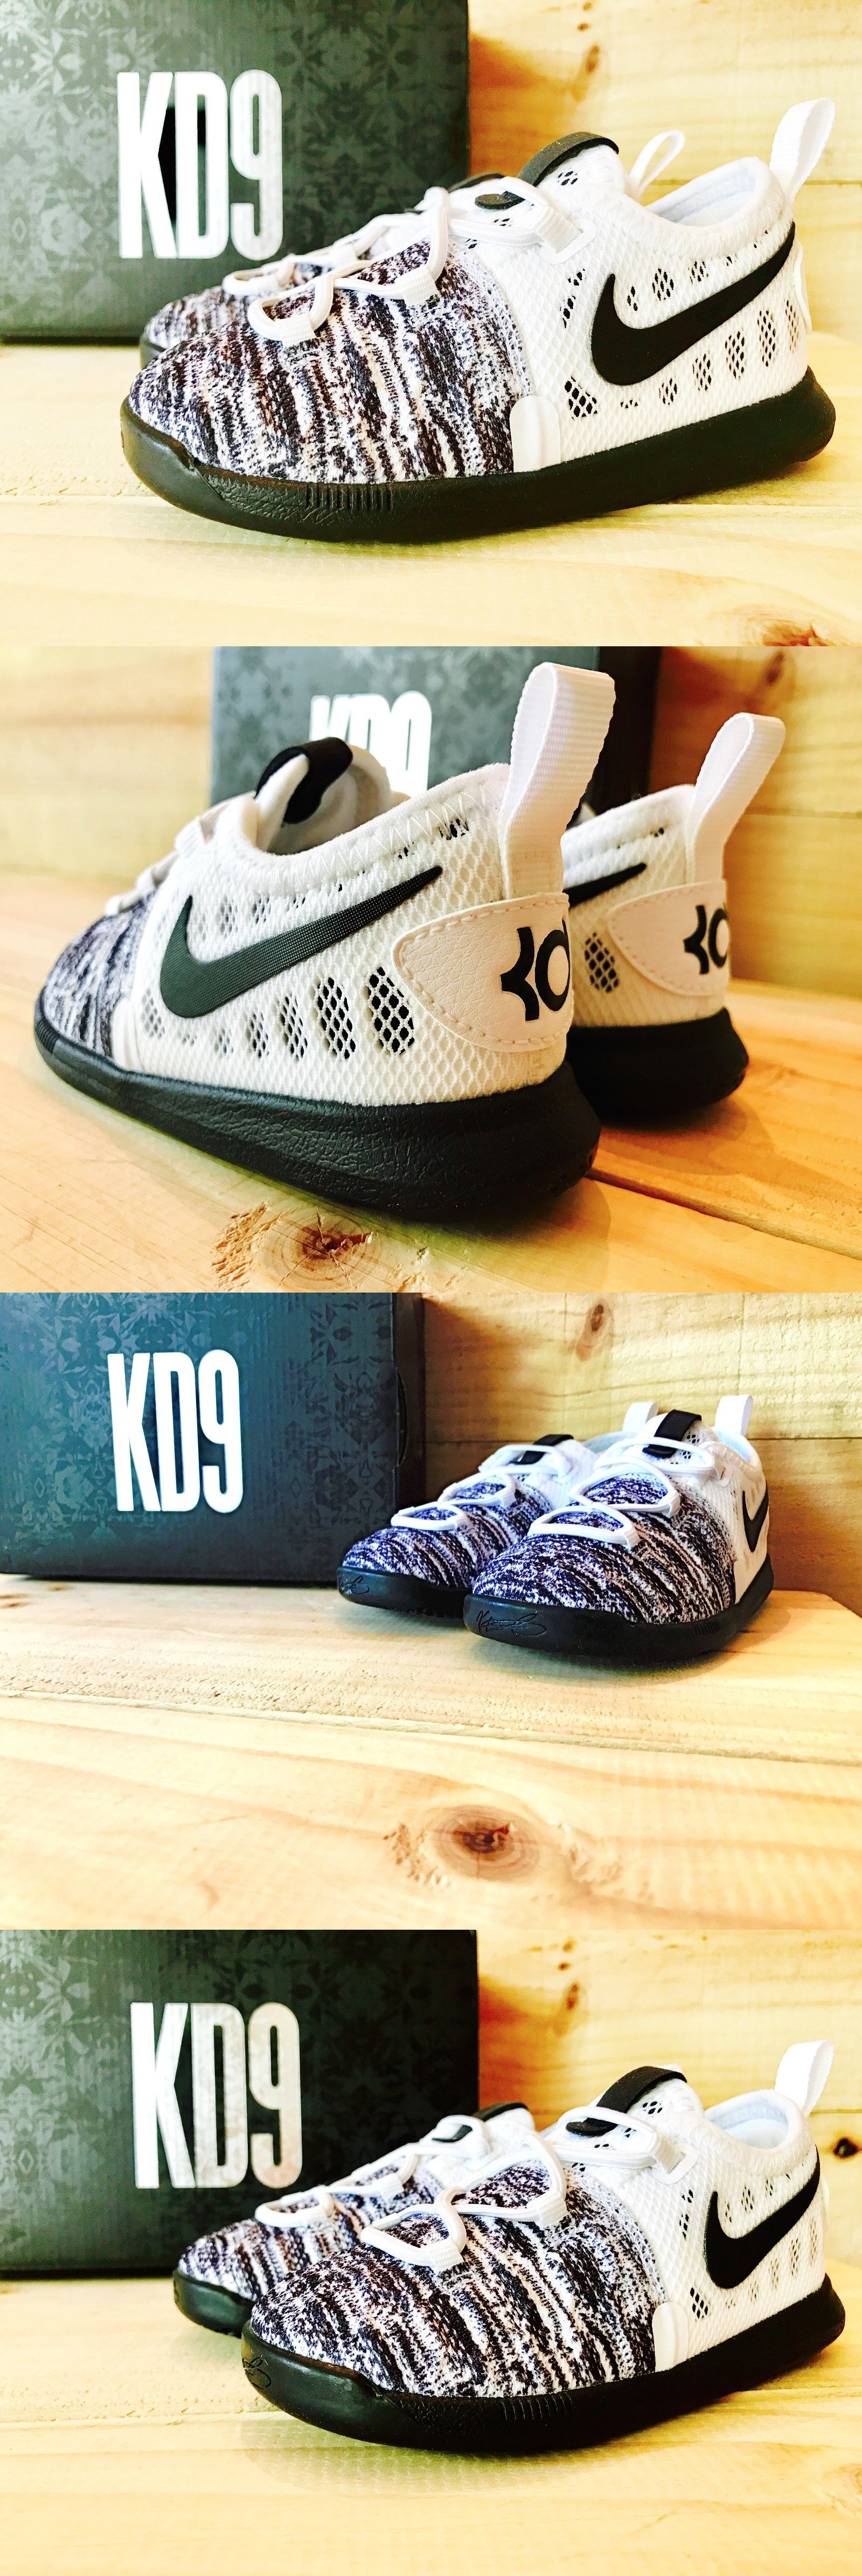 baby kd shoes nike fly knite